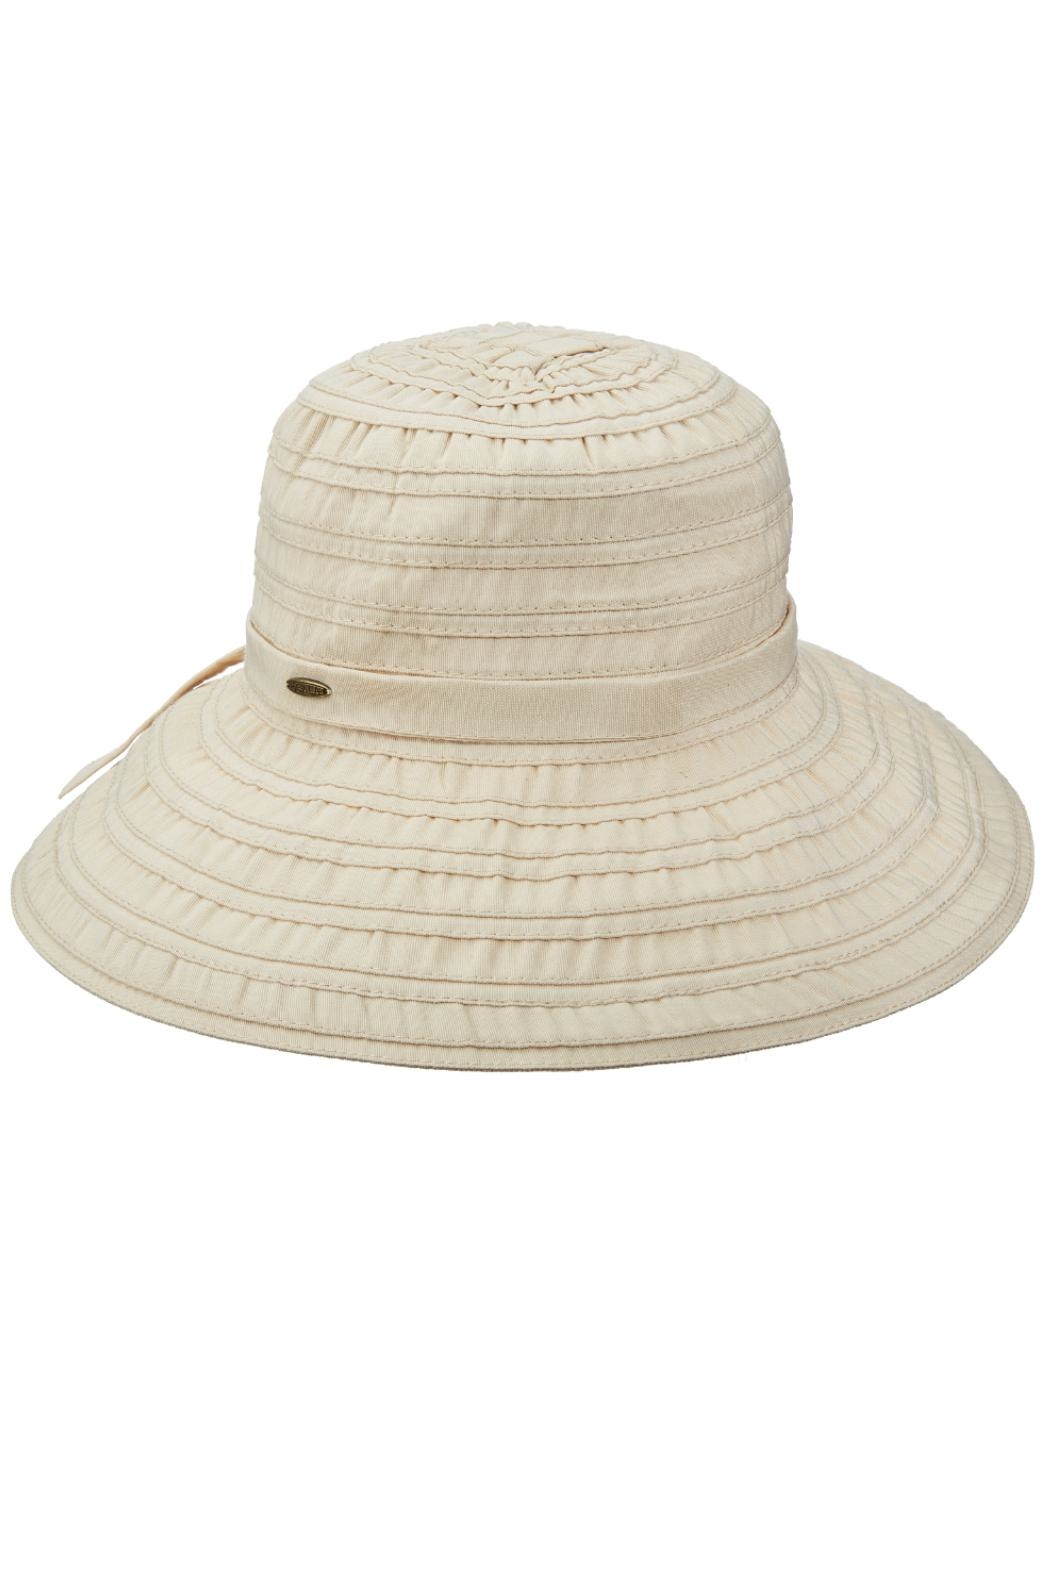 Dorfman Pacific Wide Brimmed Hat - Main Image